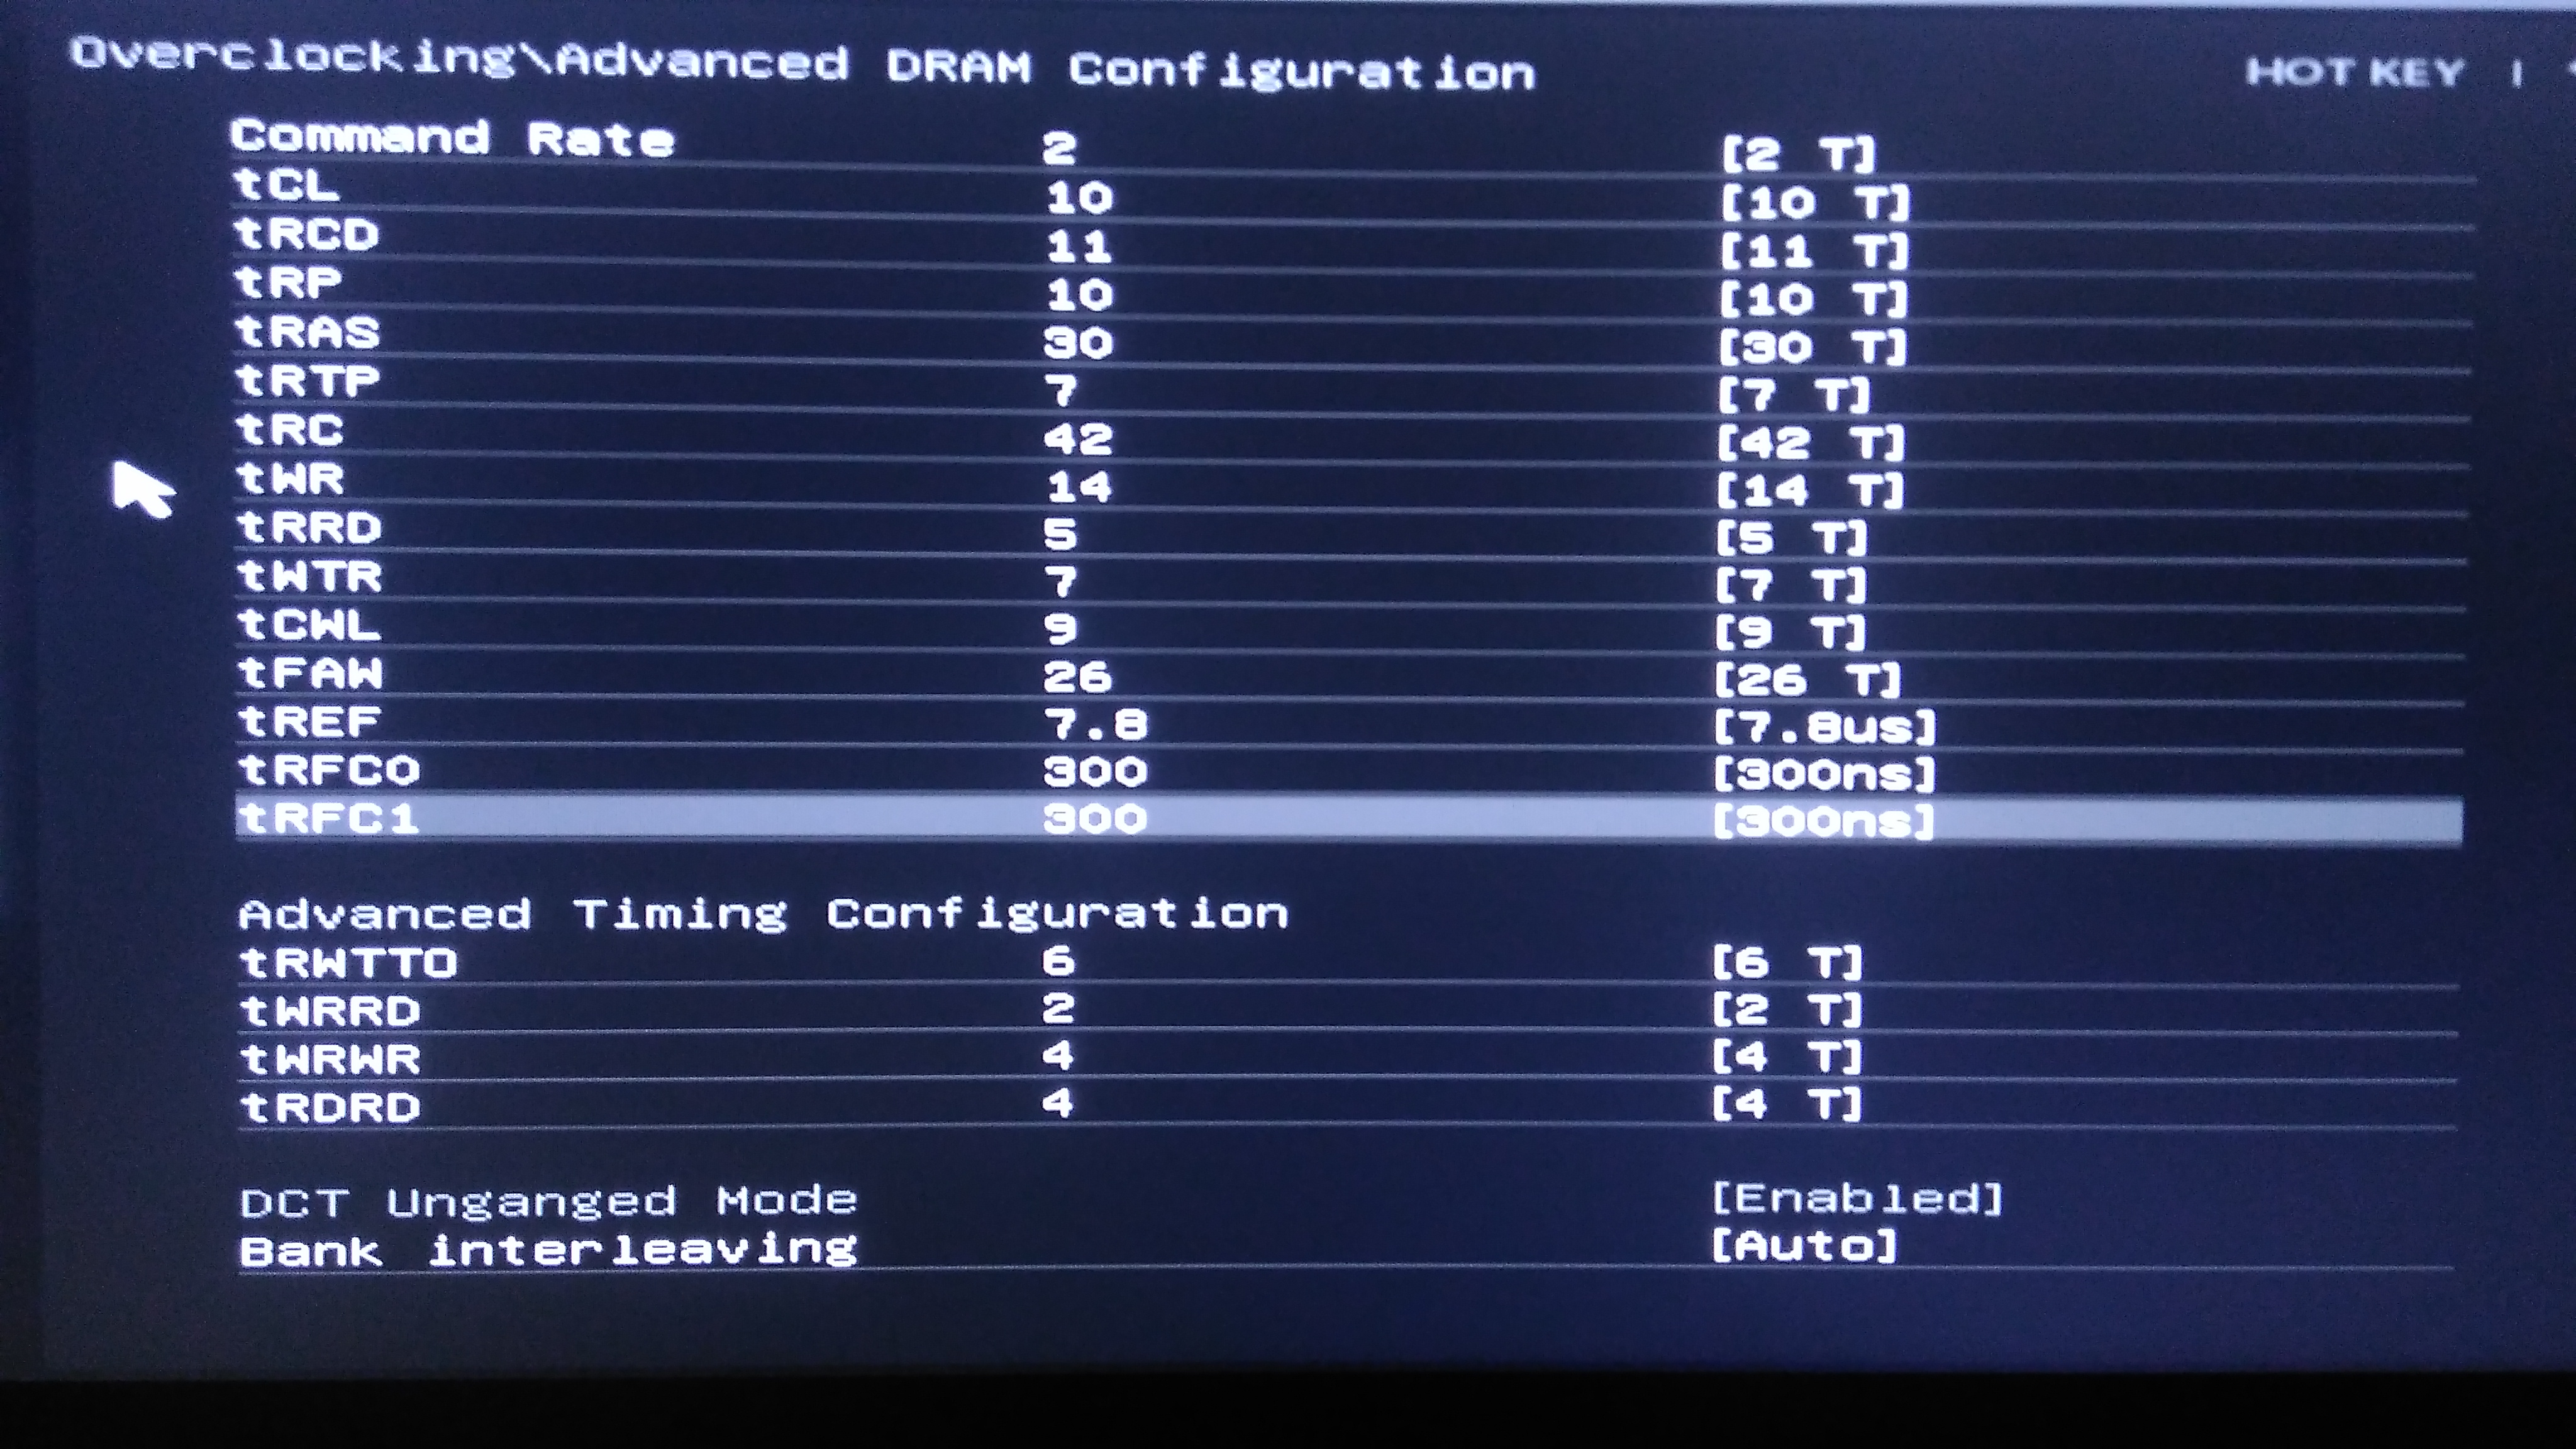 RAM Problem? Poor Latency? - CPUs, Motherboards, and Memory - Linus